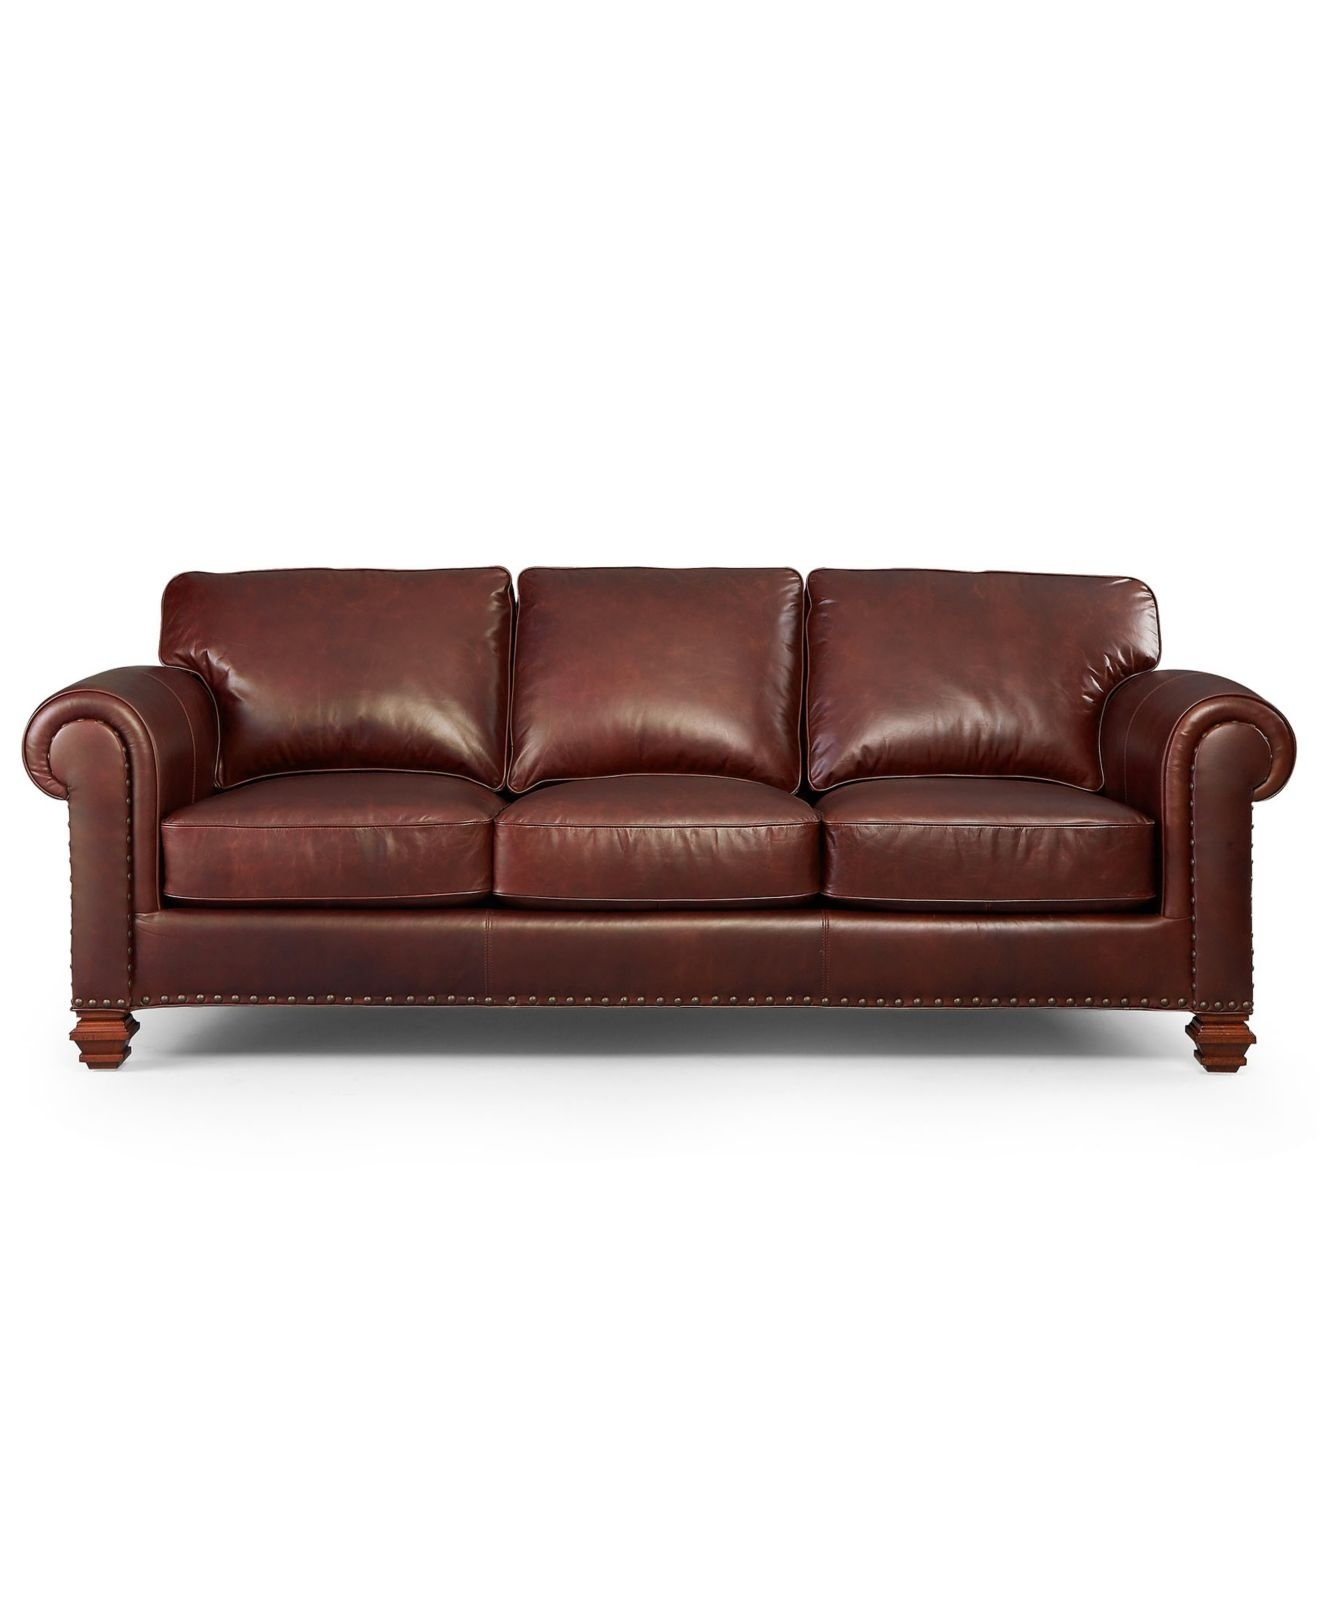 Lauren Ralph Lauren Leather Sofa, Stanmore - Living Room Furniture throughout Macys Leather Sofas (Image 2 of 10)